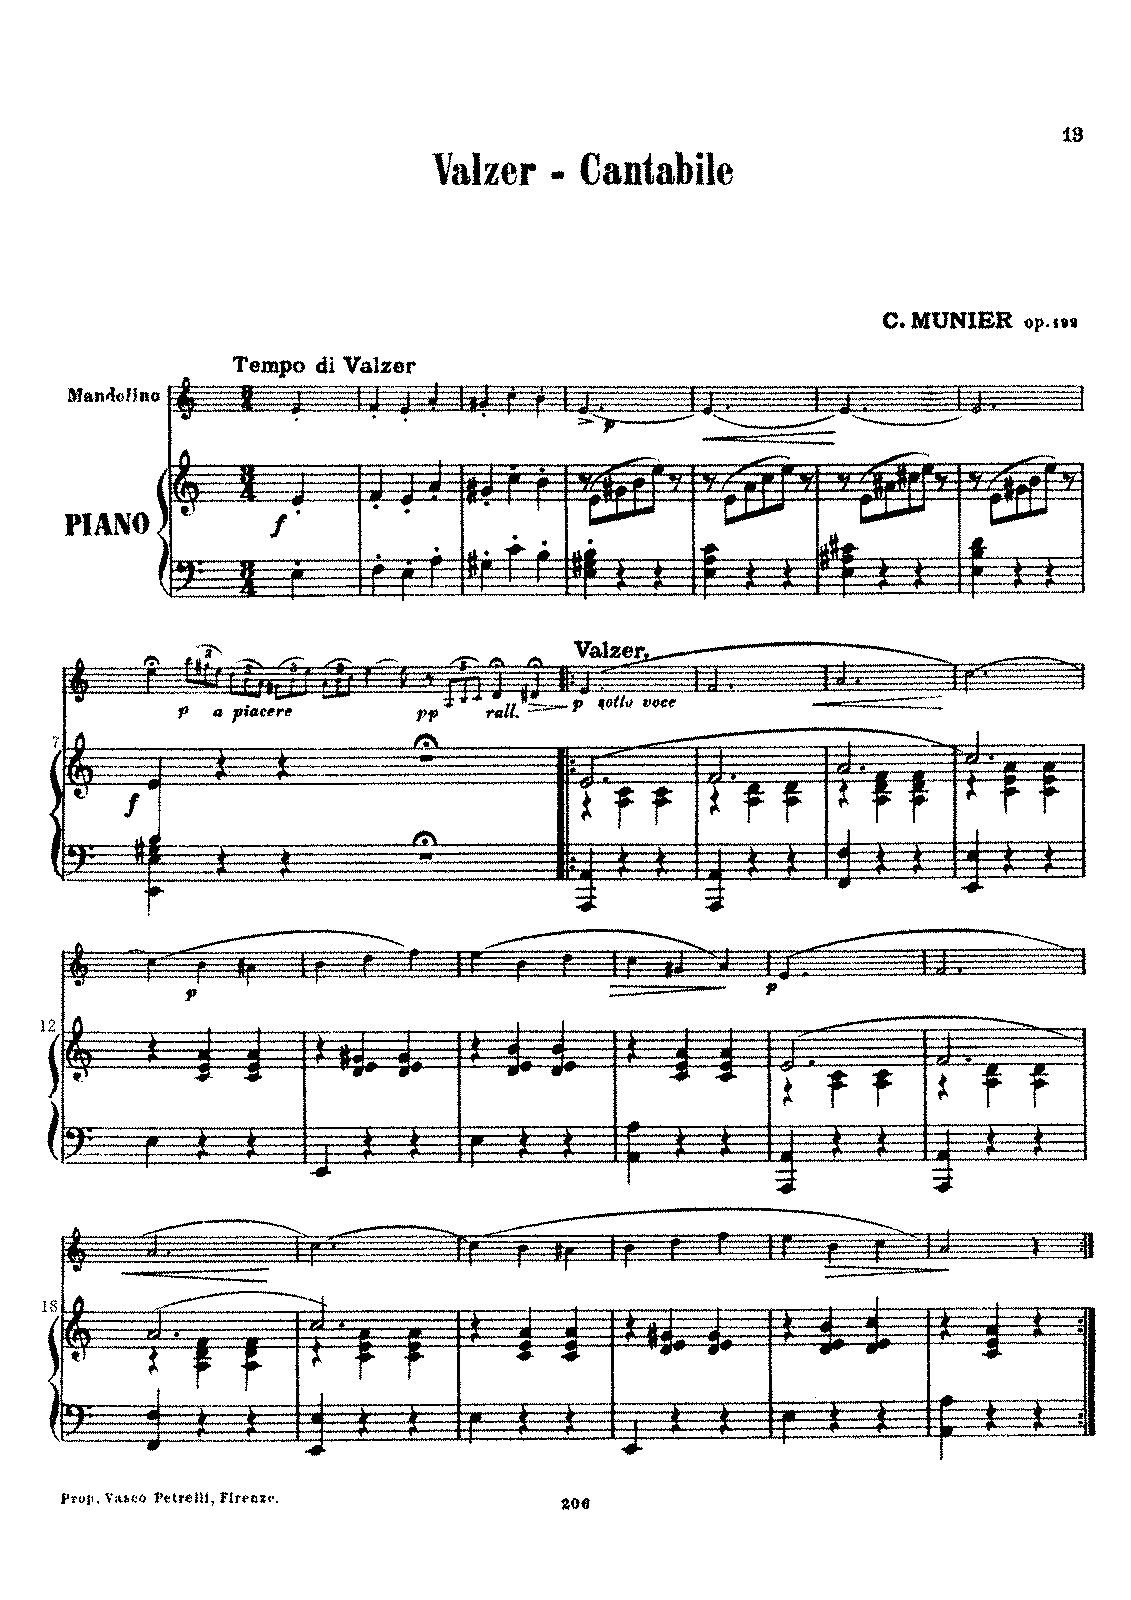 PMLP656846-Valzer - Cantabile, Nelly Album Ⅲ.Valzer - Cantabile Op.192 C.Munier Pianoforte part.pdf